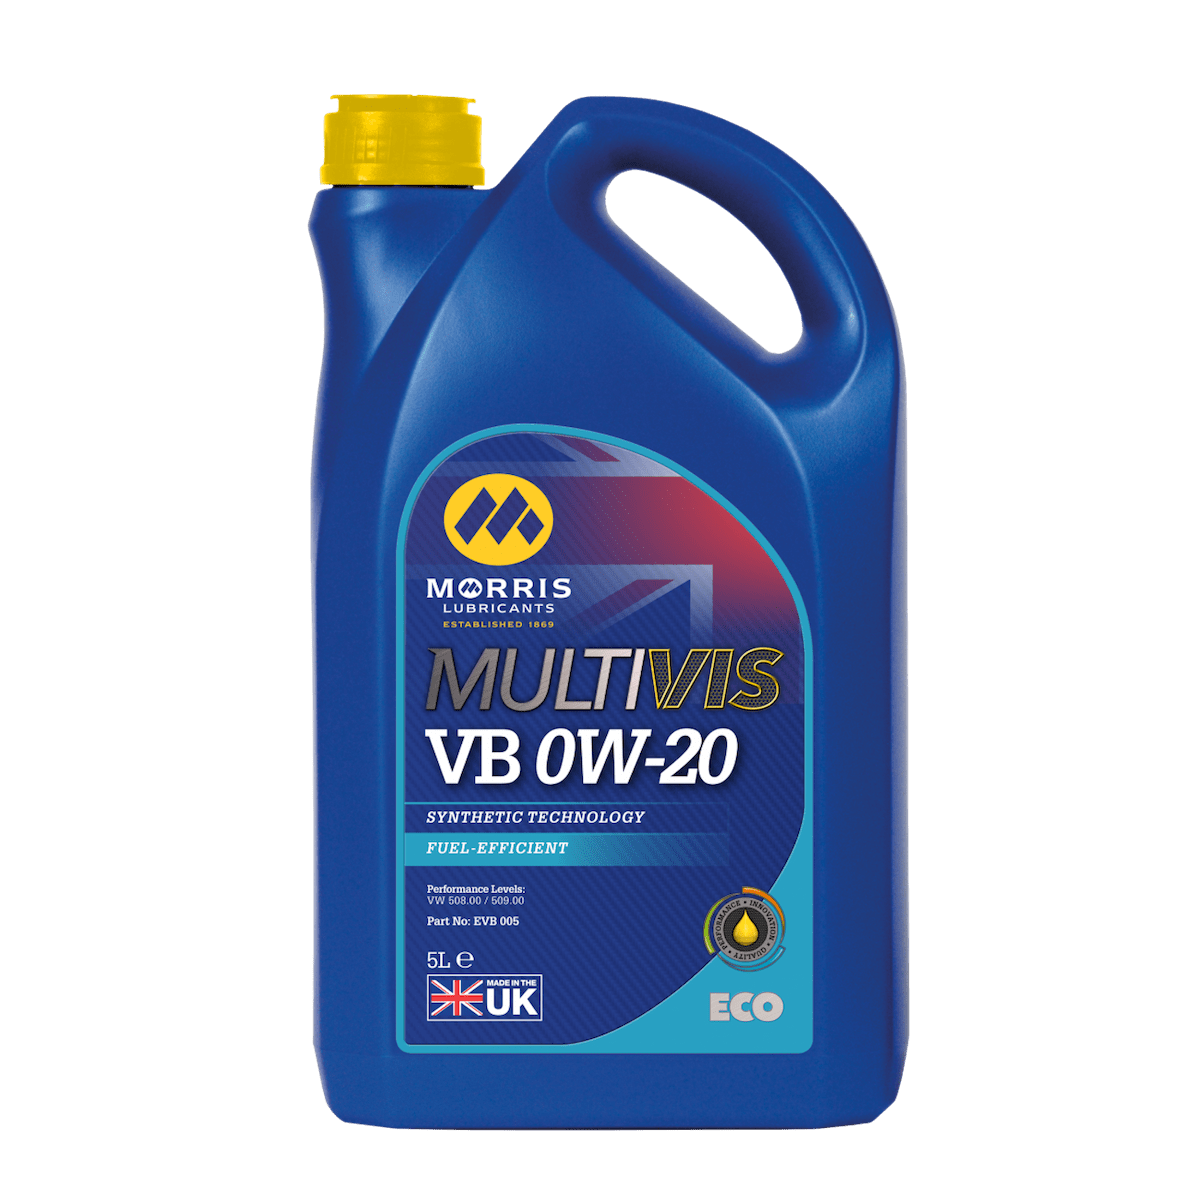 Multivis ECO VB 0W-20